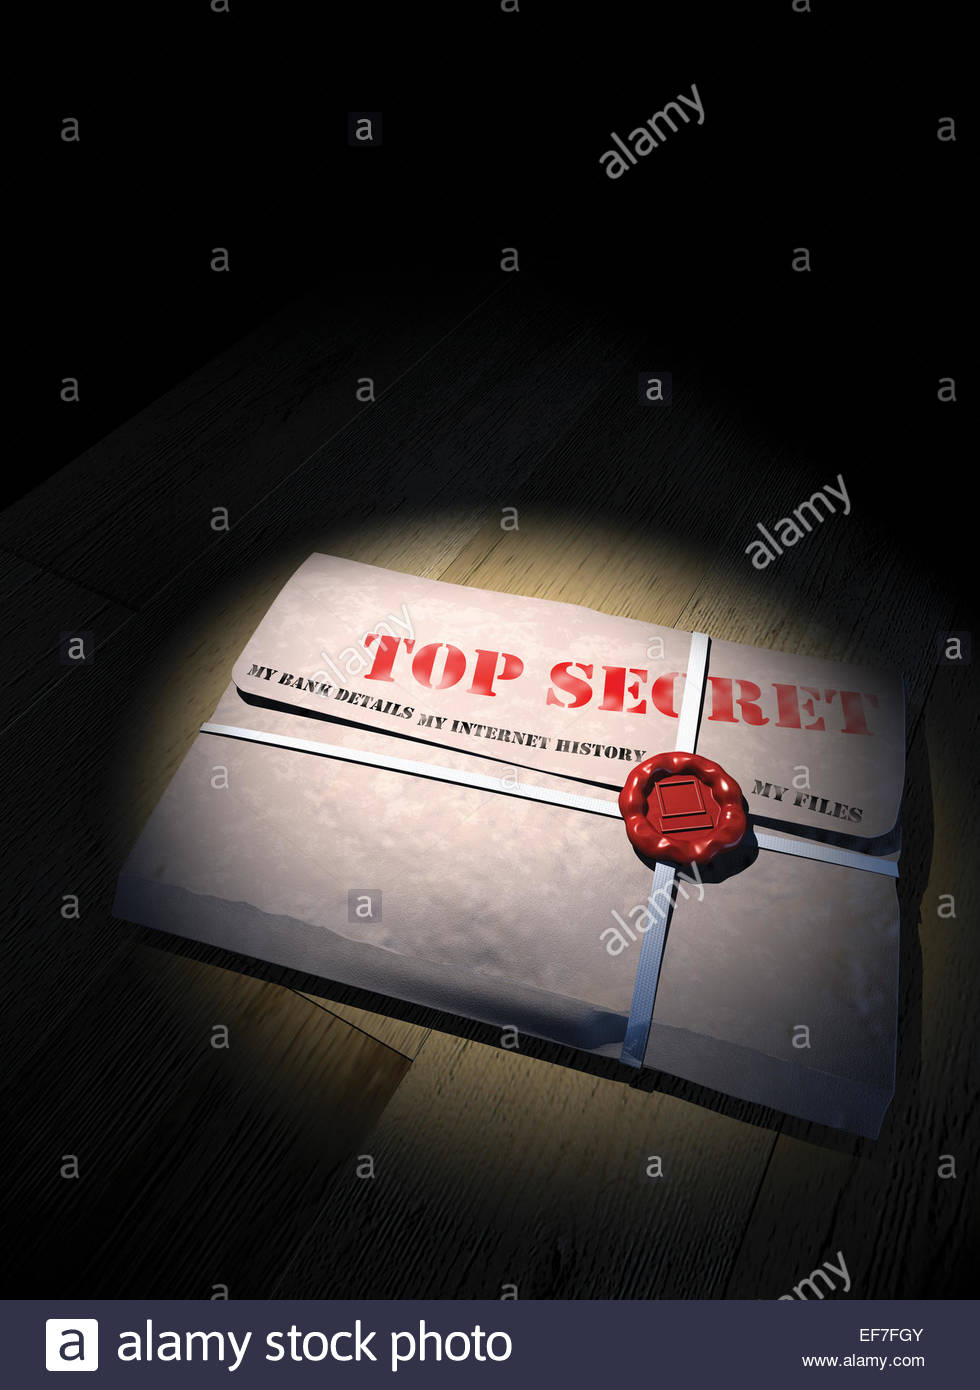 Document folder with seal containing top secret internet banking information - Stock Image